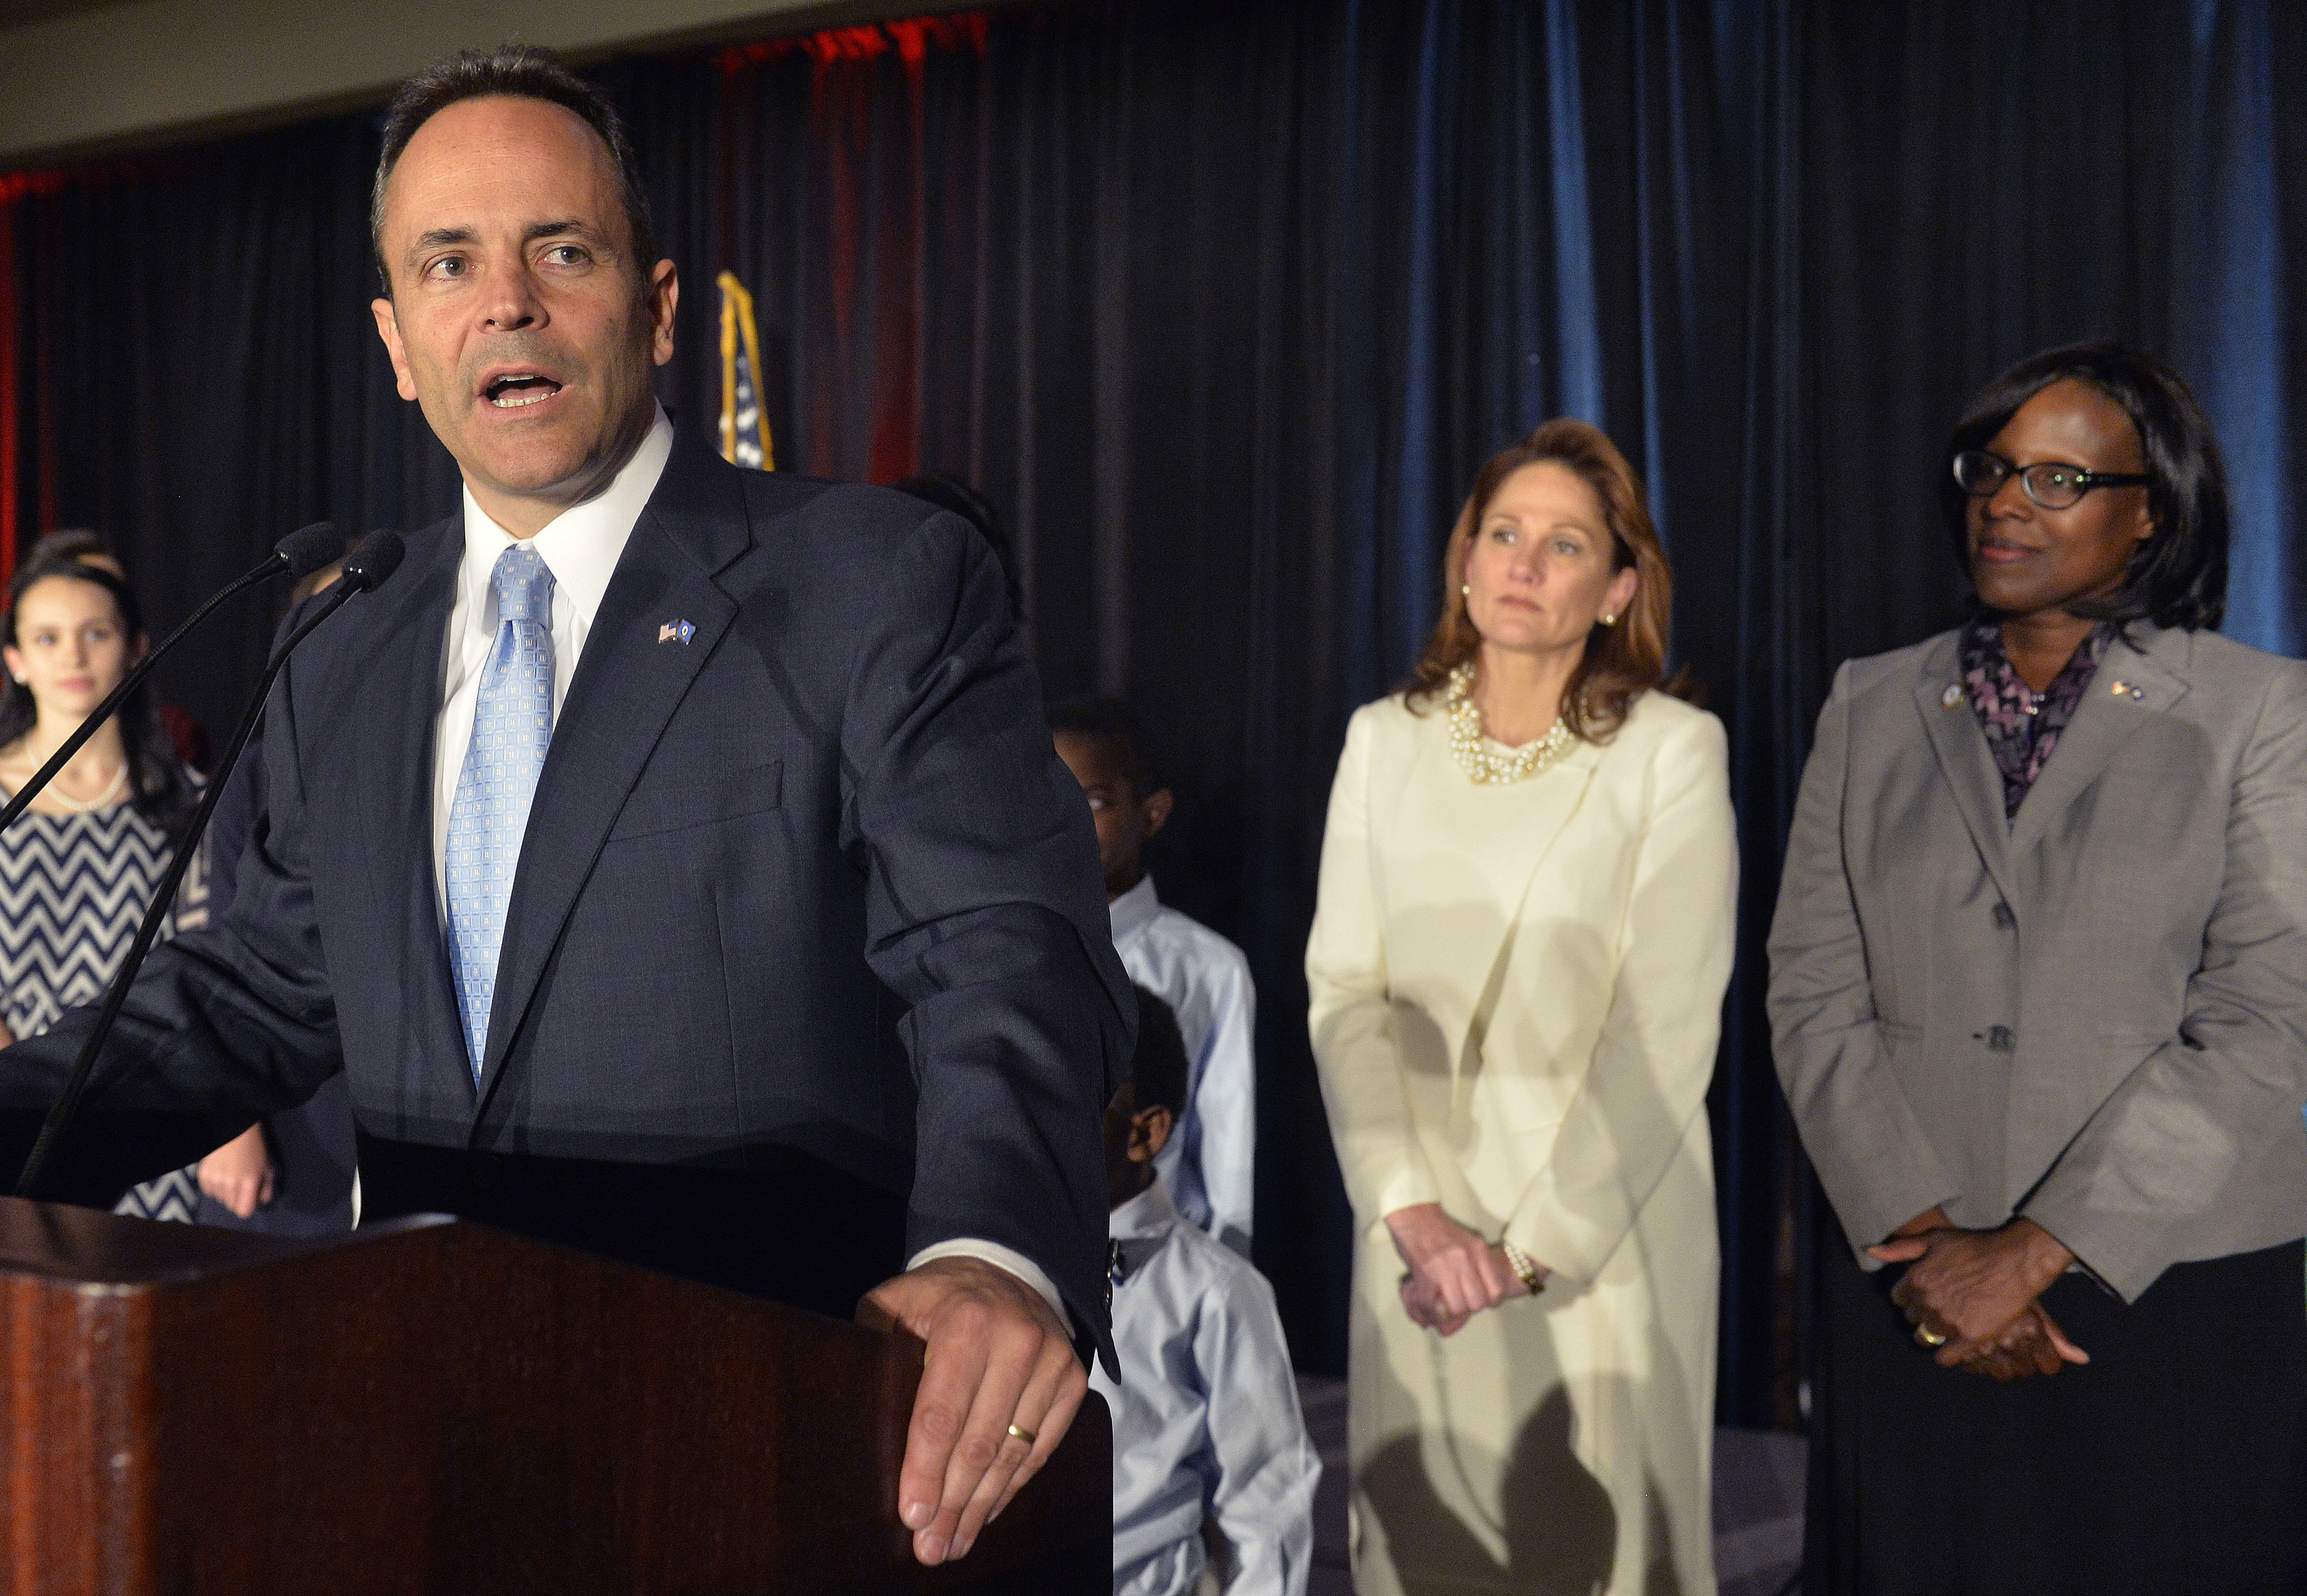 With his wife Glenna Bevin, center, and Lieutenant Governor-elect Jenean Hampton, right, looking on, Kentucky Republican Governor-elect Matt Bevin, speaks to his supporters at the Republican Party victory celebration, Tuesday, Nov. 3, 2015, in Louisv...